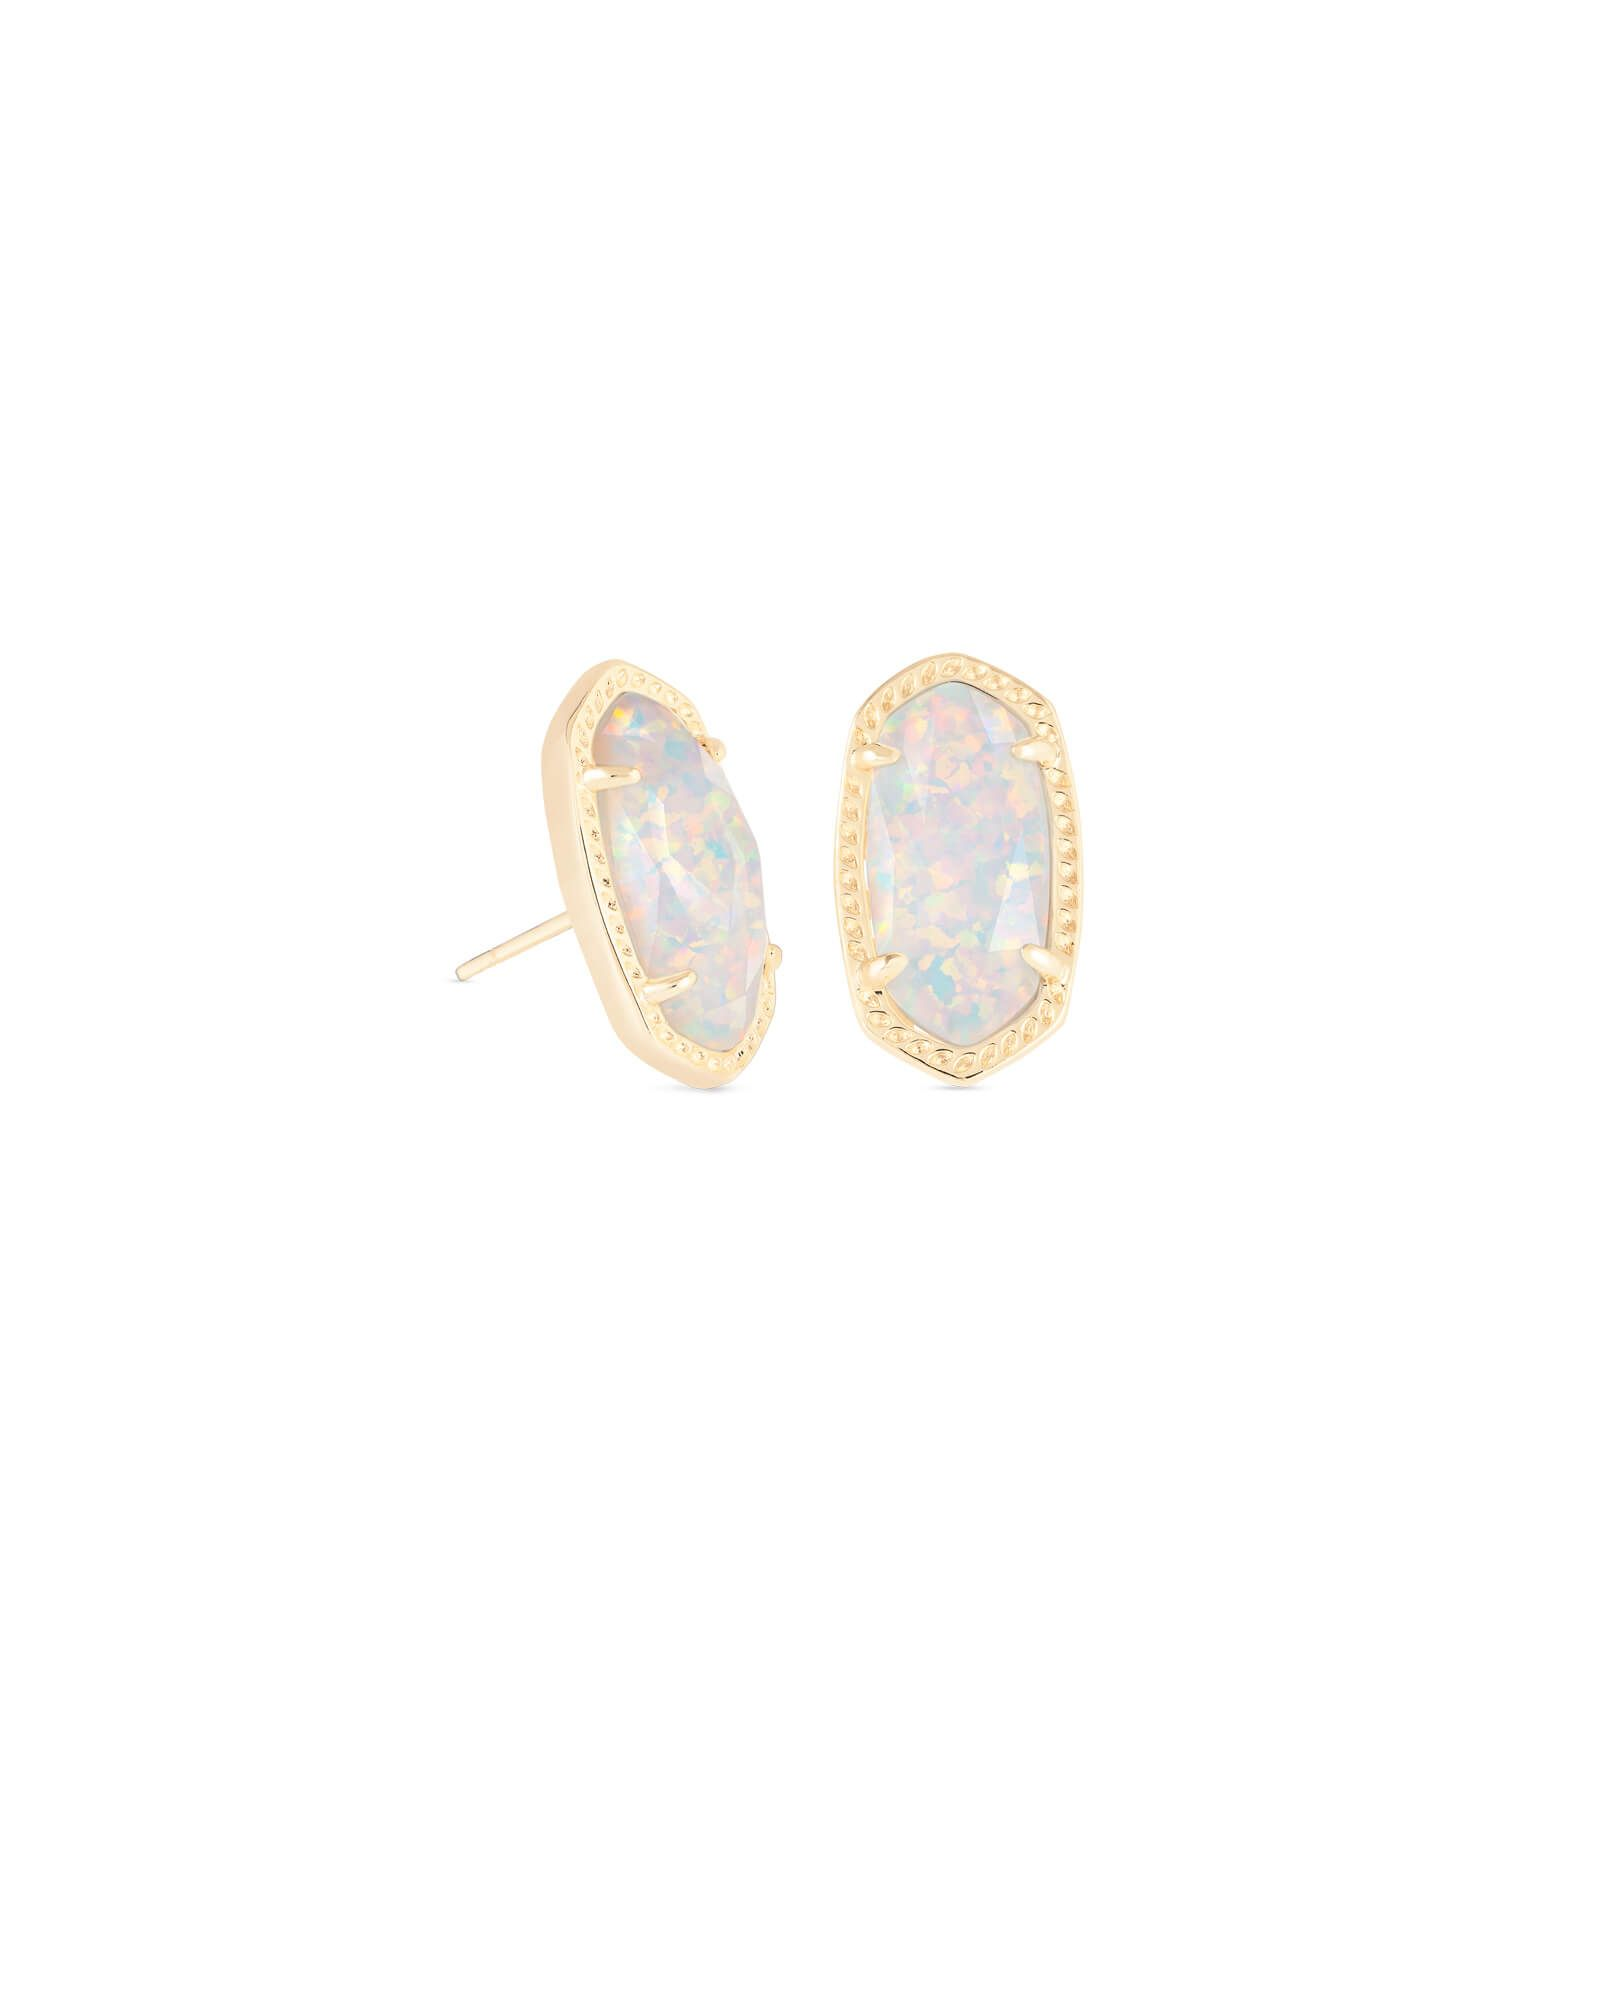 6b86bf865 Ellie Gold Stud Earrings in White Kyocera Opal in 2019 | Jewelry ...